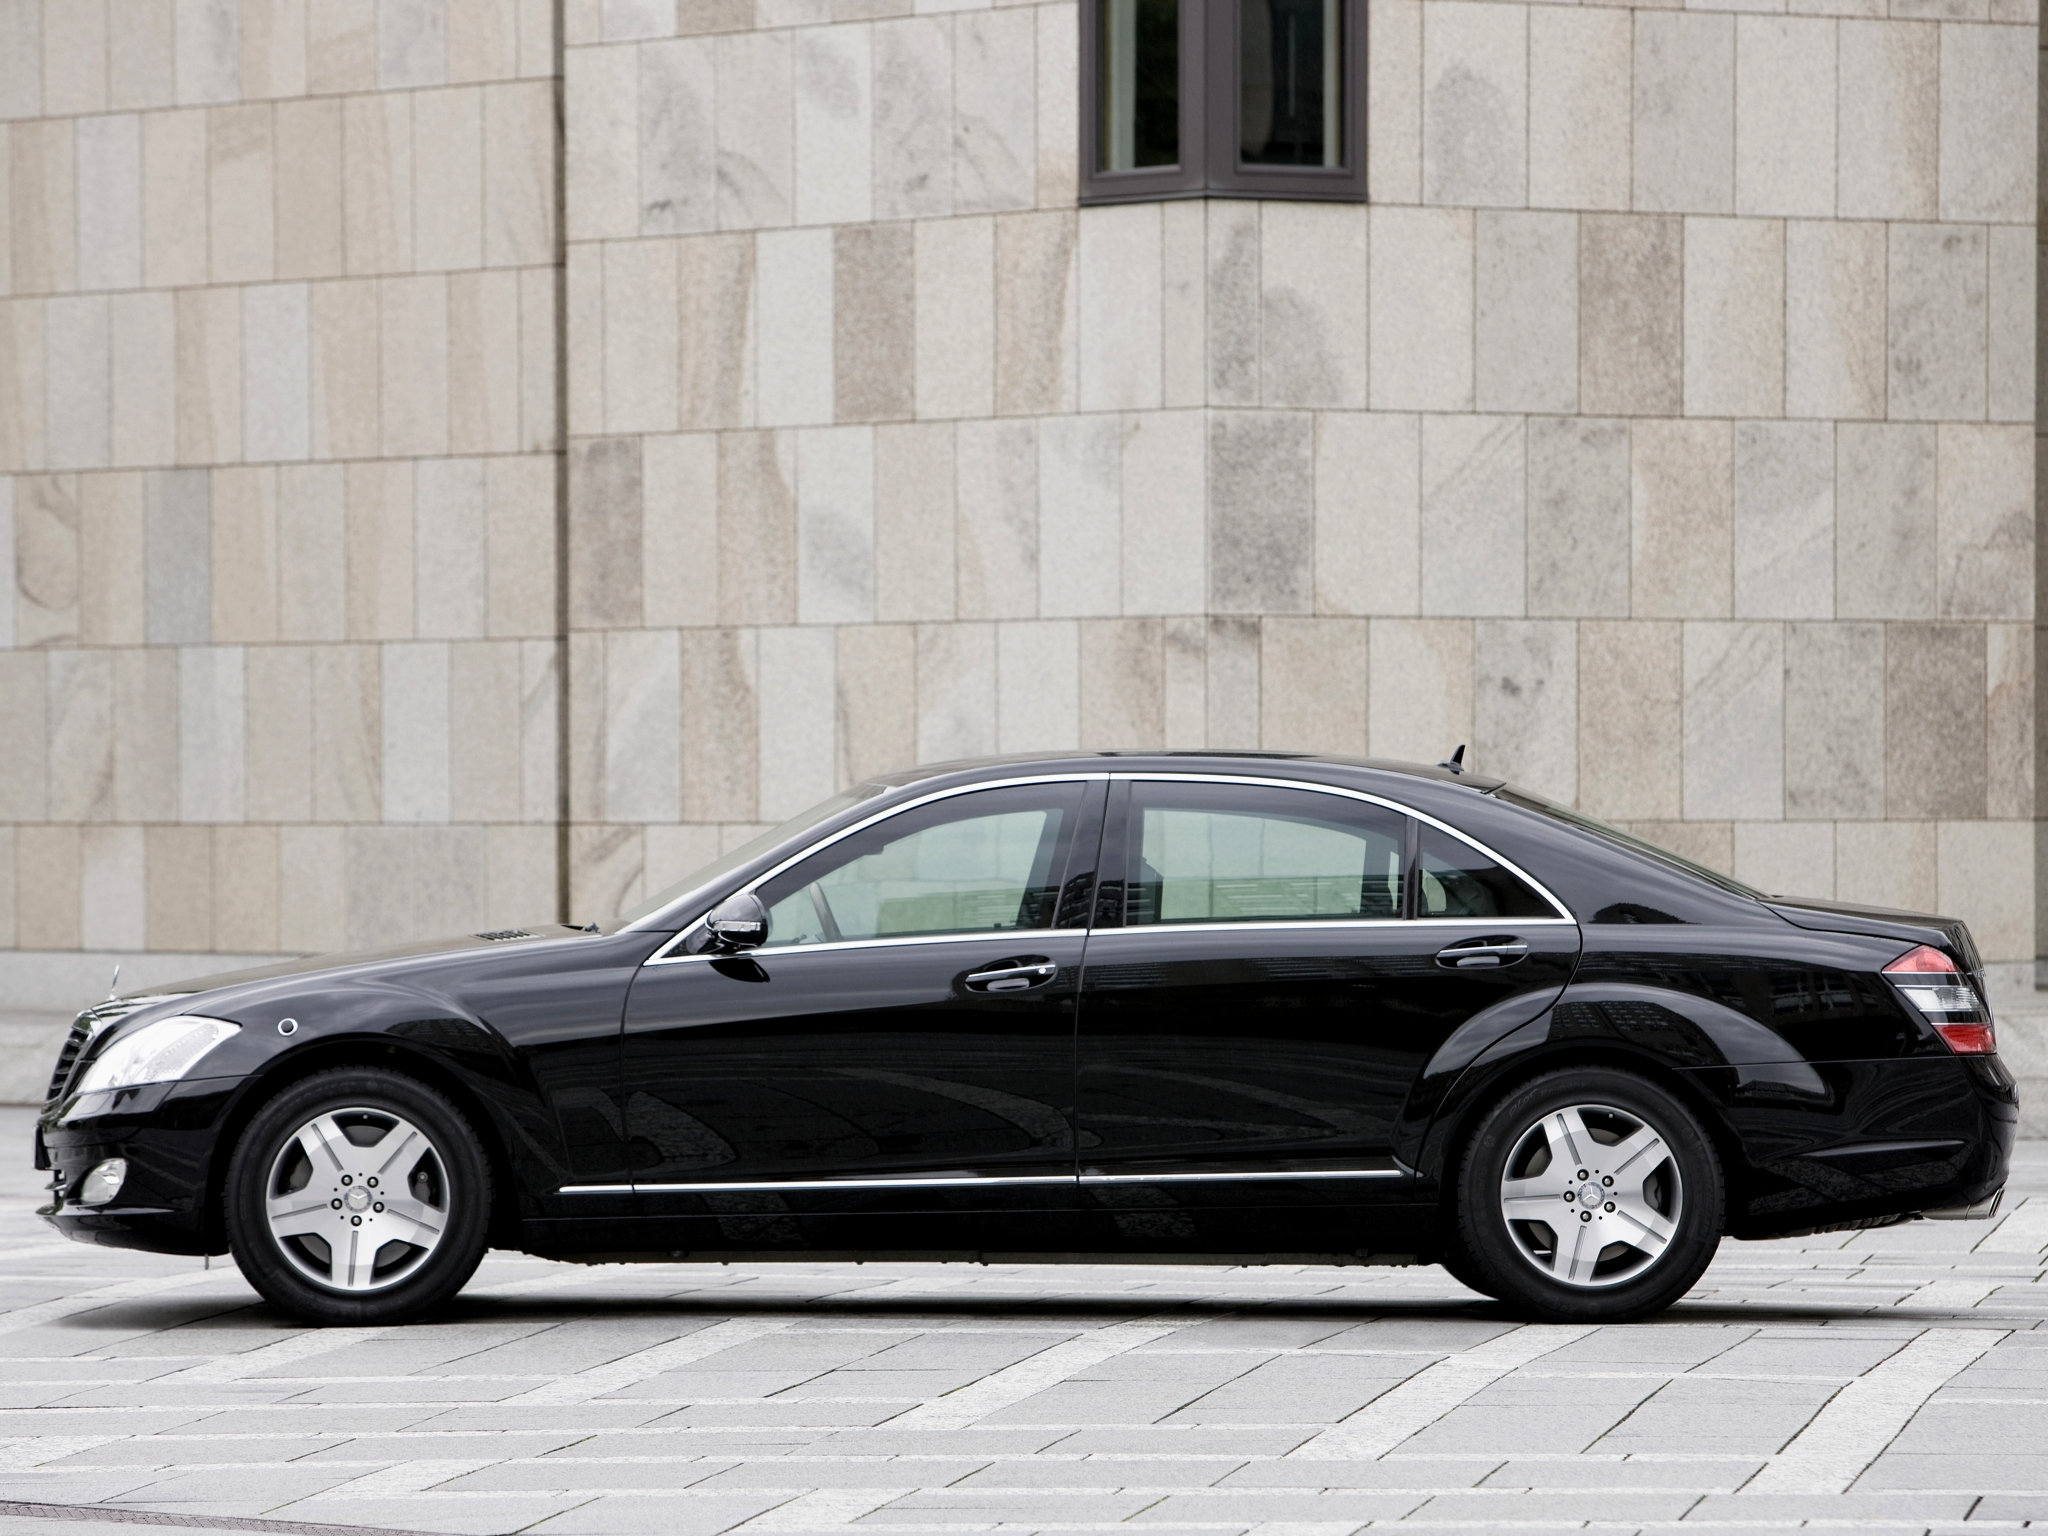 2007 armored mercedes benz s 600 guard w221 luxury h for Mercedes benz e guard price